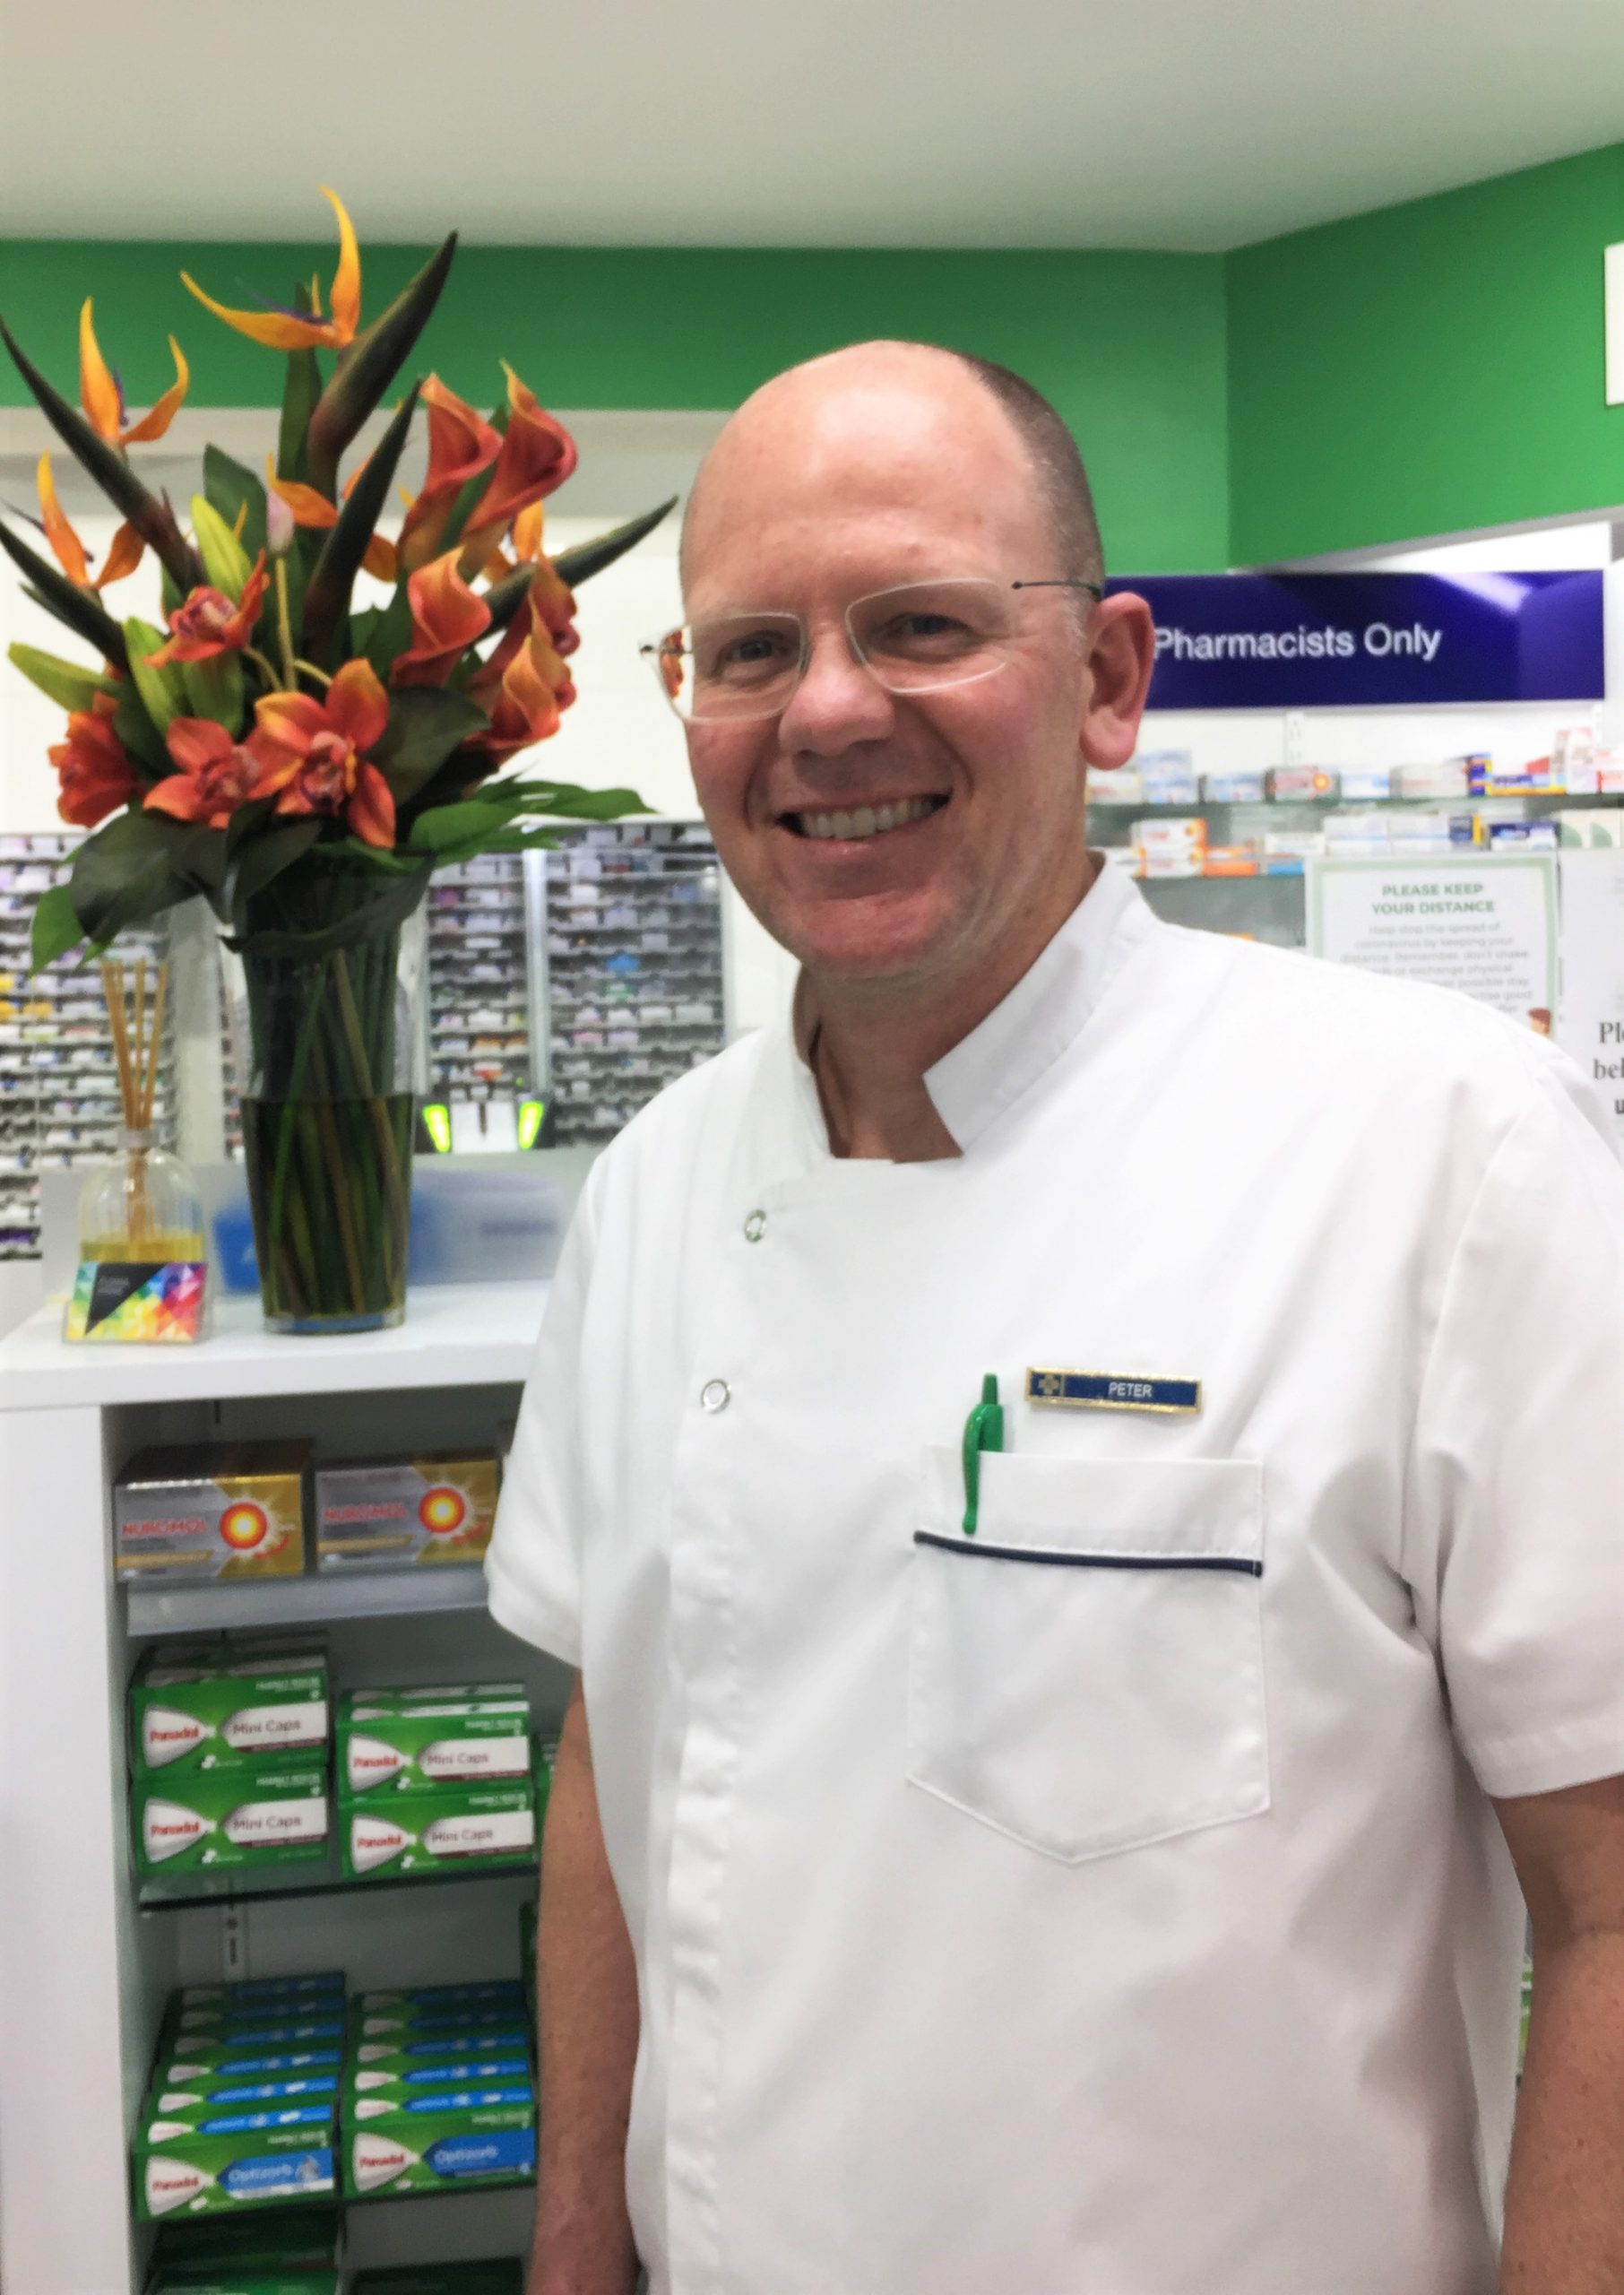 Business Owner and Pharmacist Peter Miller is always read to assist customers and with prescriptions changes coming, his friendly and experienced team are here for you.